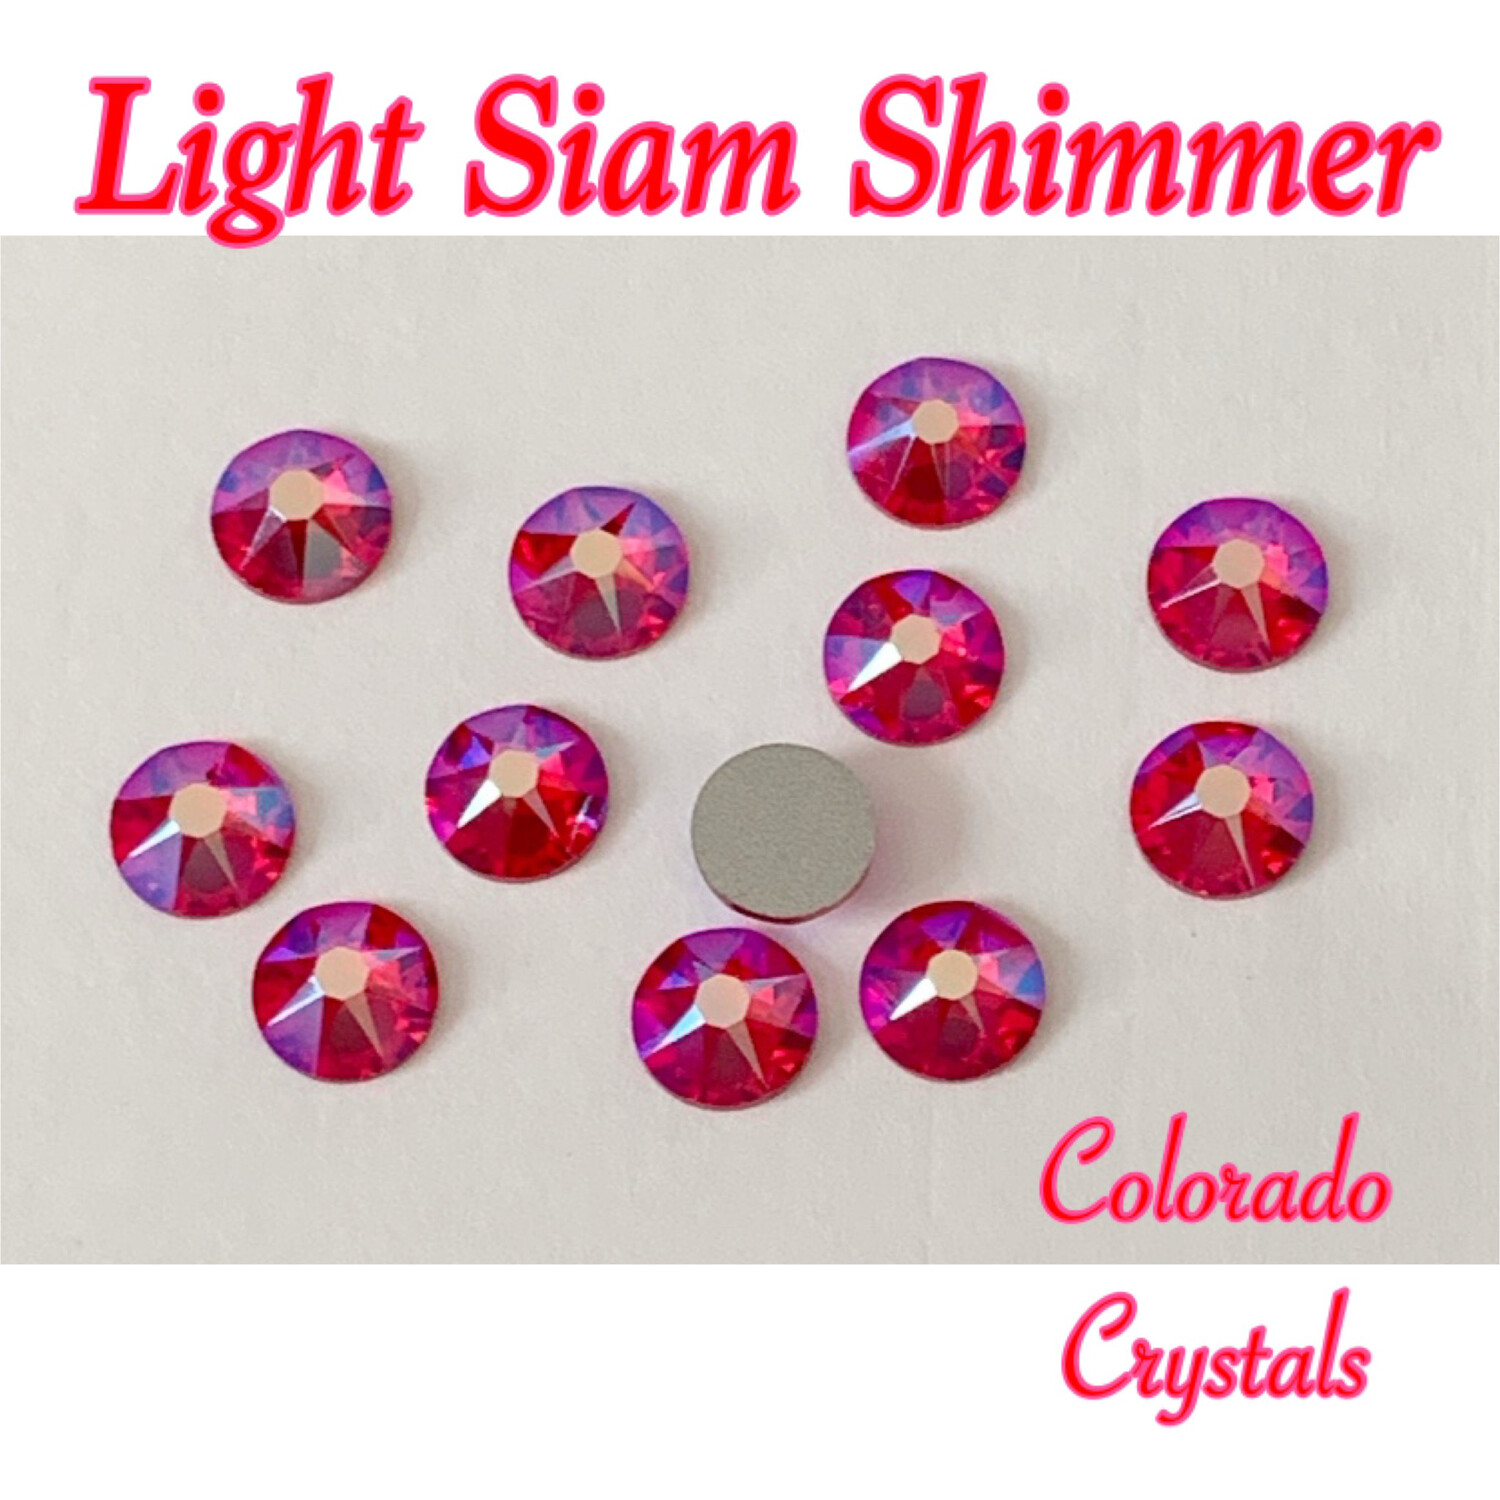 Light Siam Shimmer 30ss 2088 Limited